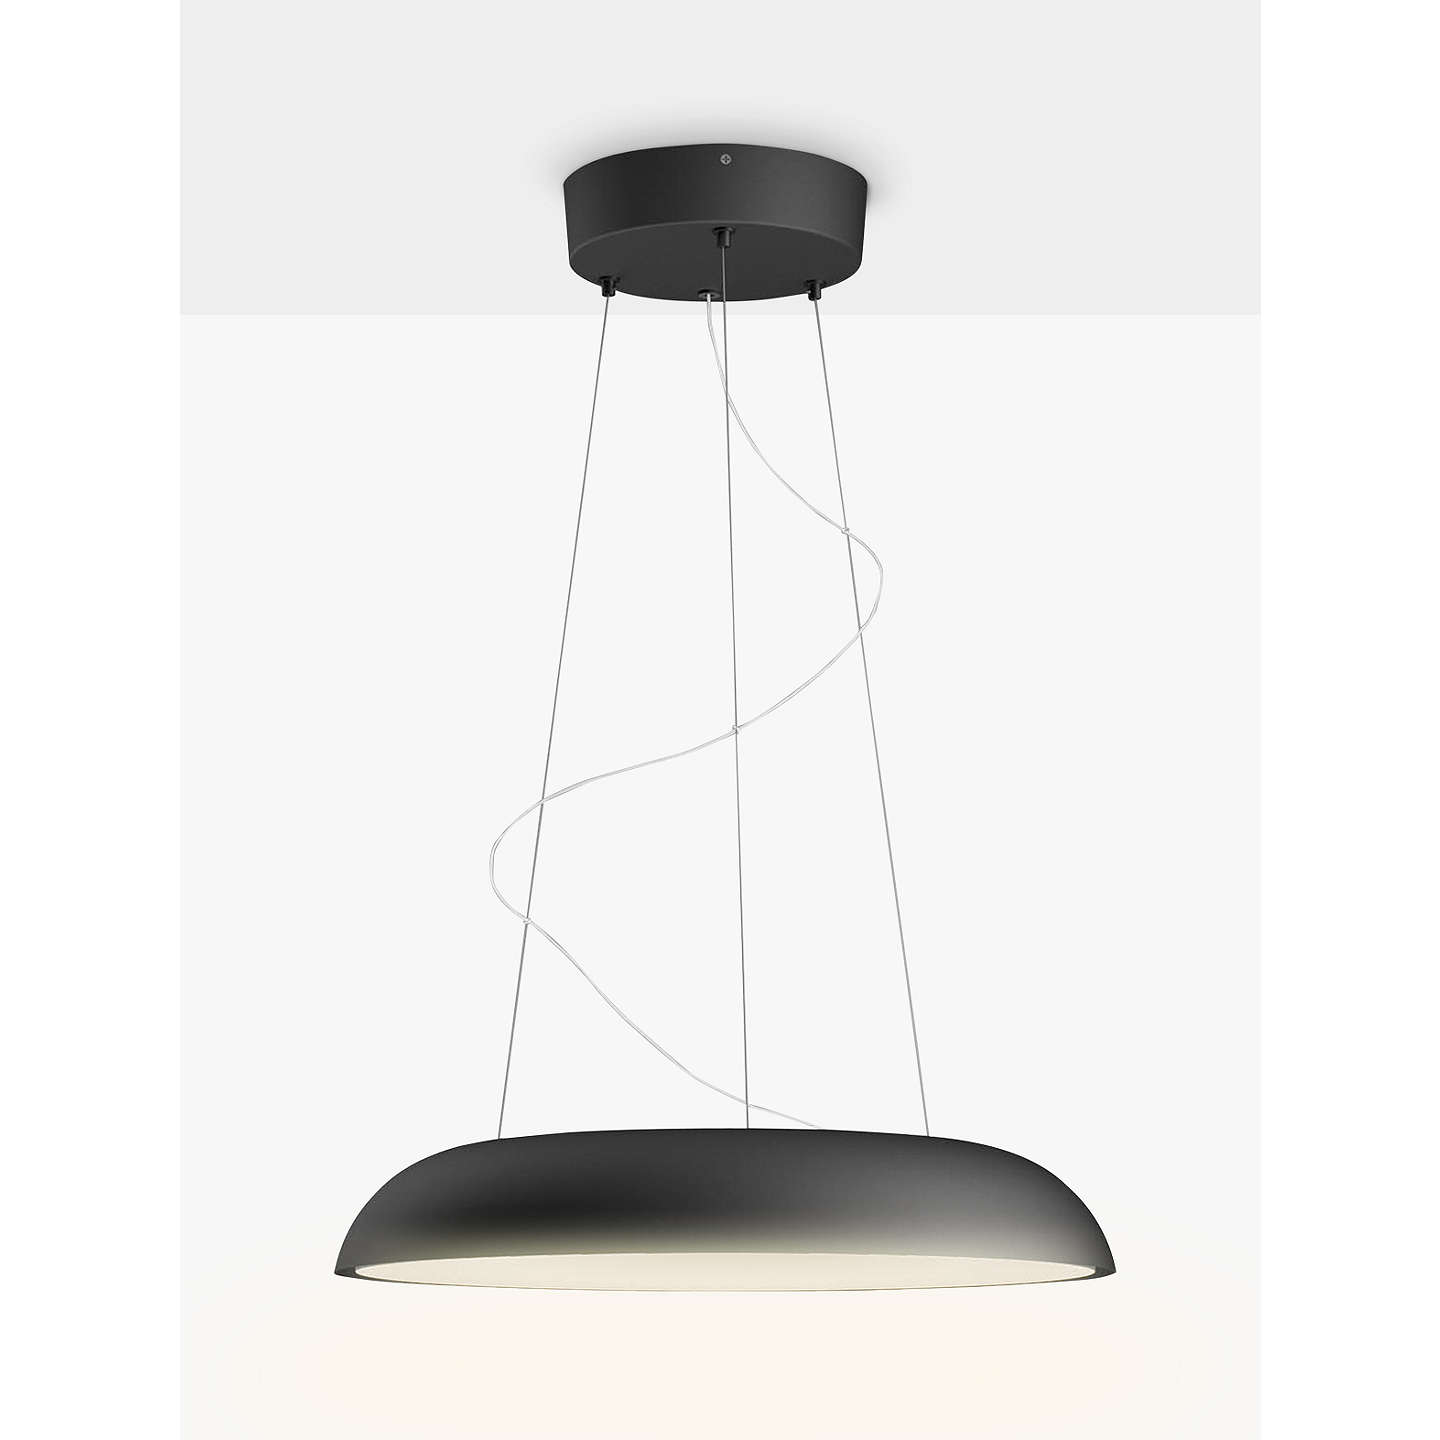 philips hue ambiance amaze pendant ceiling light at john lewis. Black Bedroom Furniture Sets. Home Design Ideas